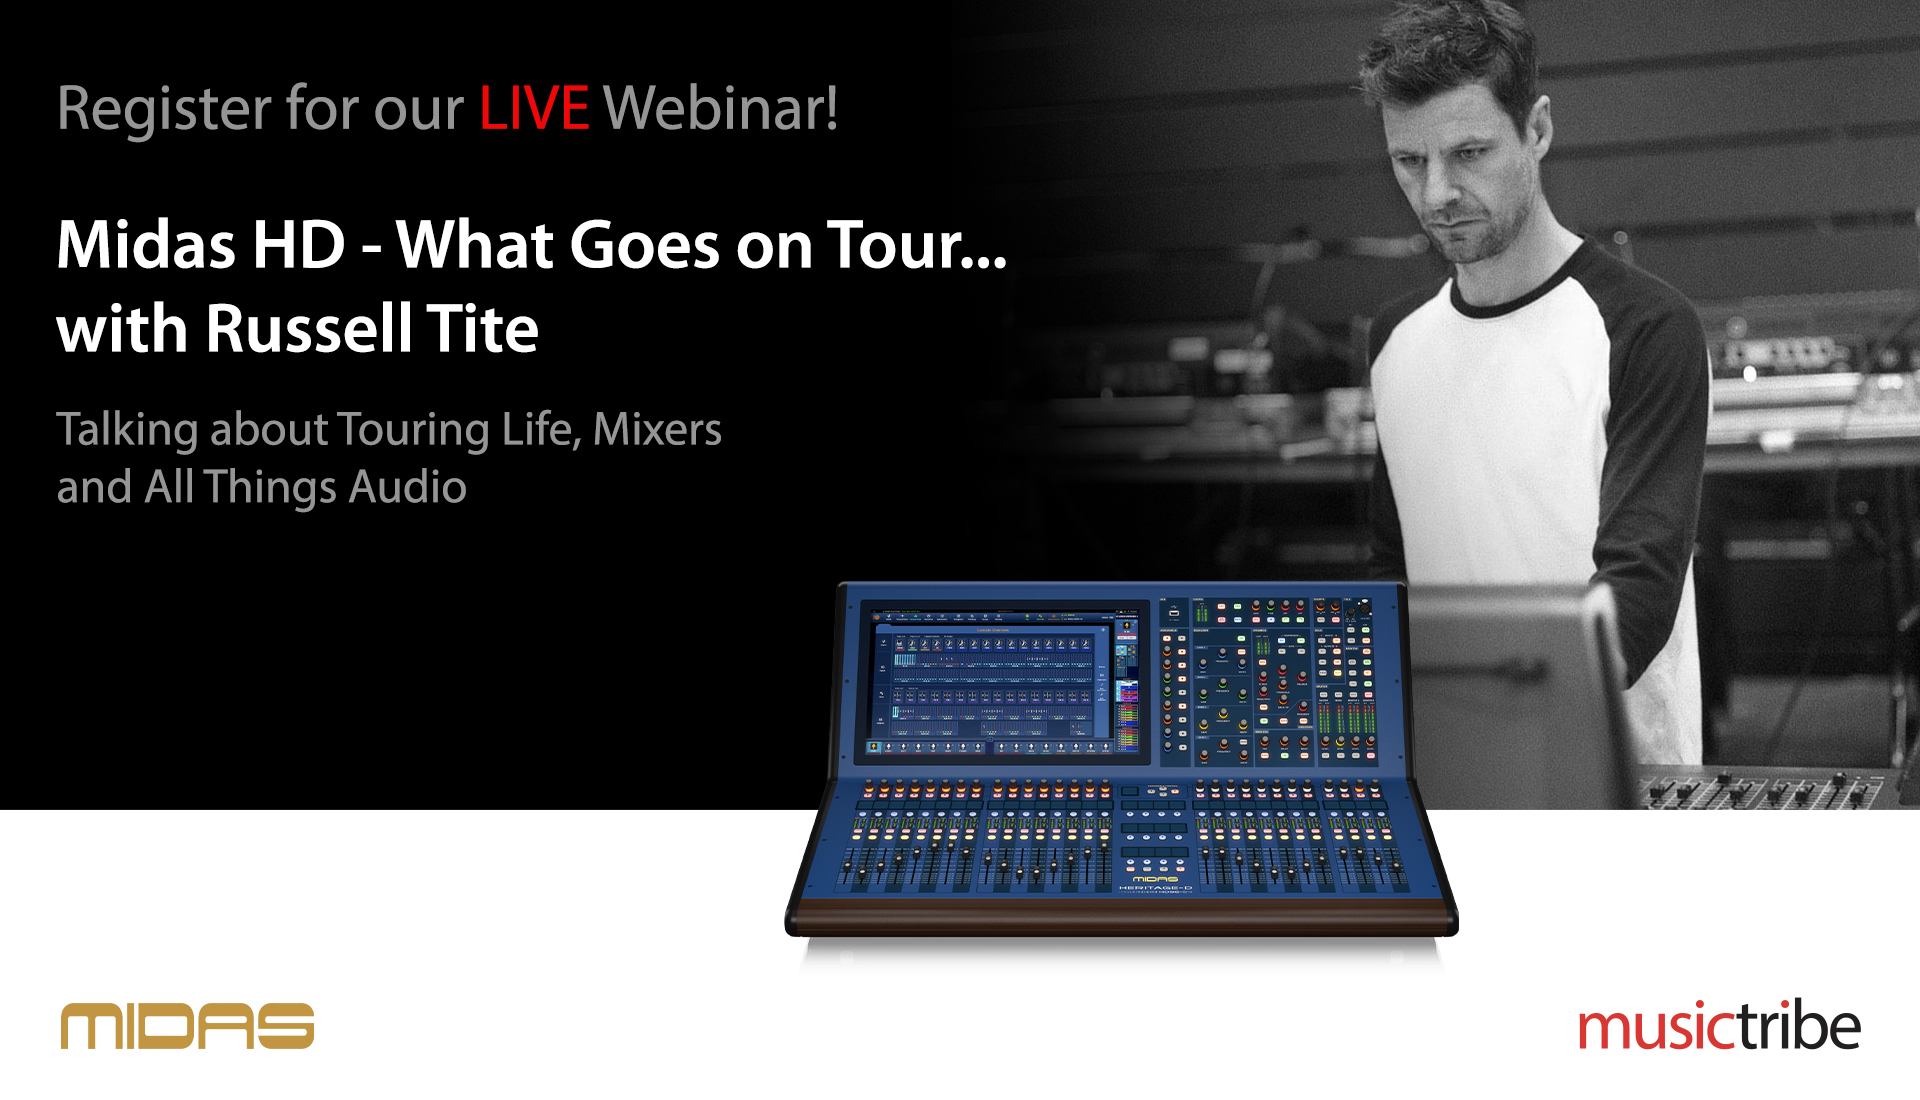 Midas LIVE Webinar: What Goes On Tour... with Russell Tite